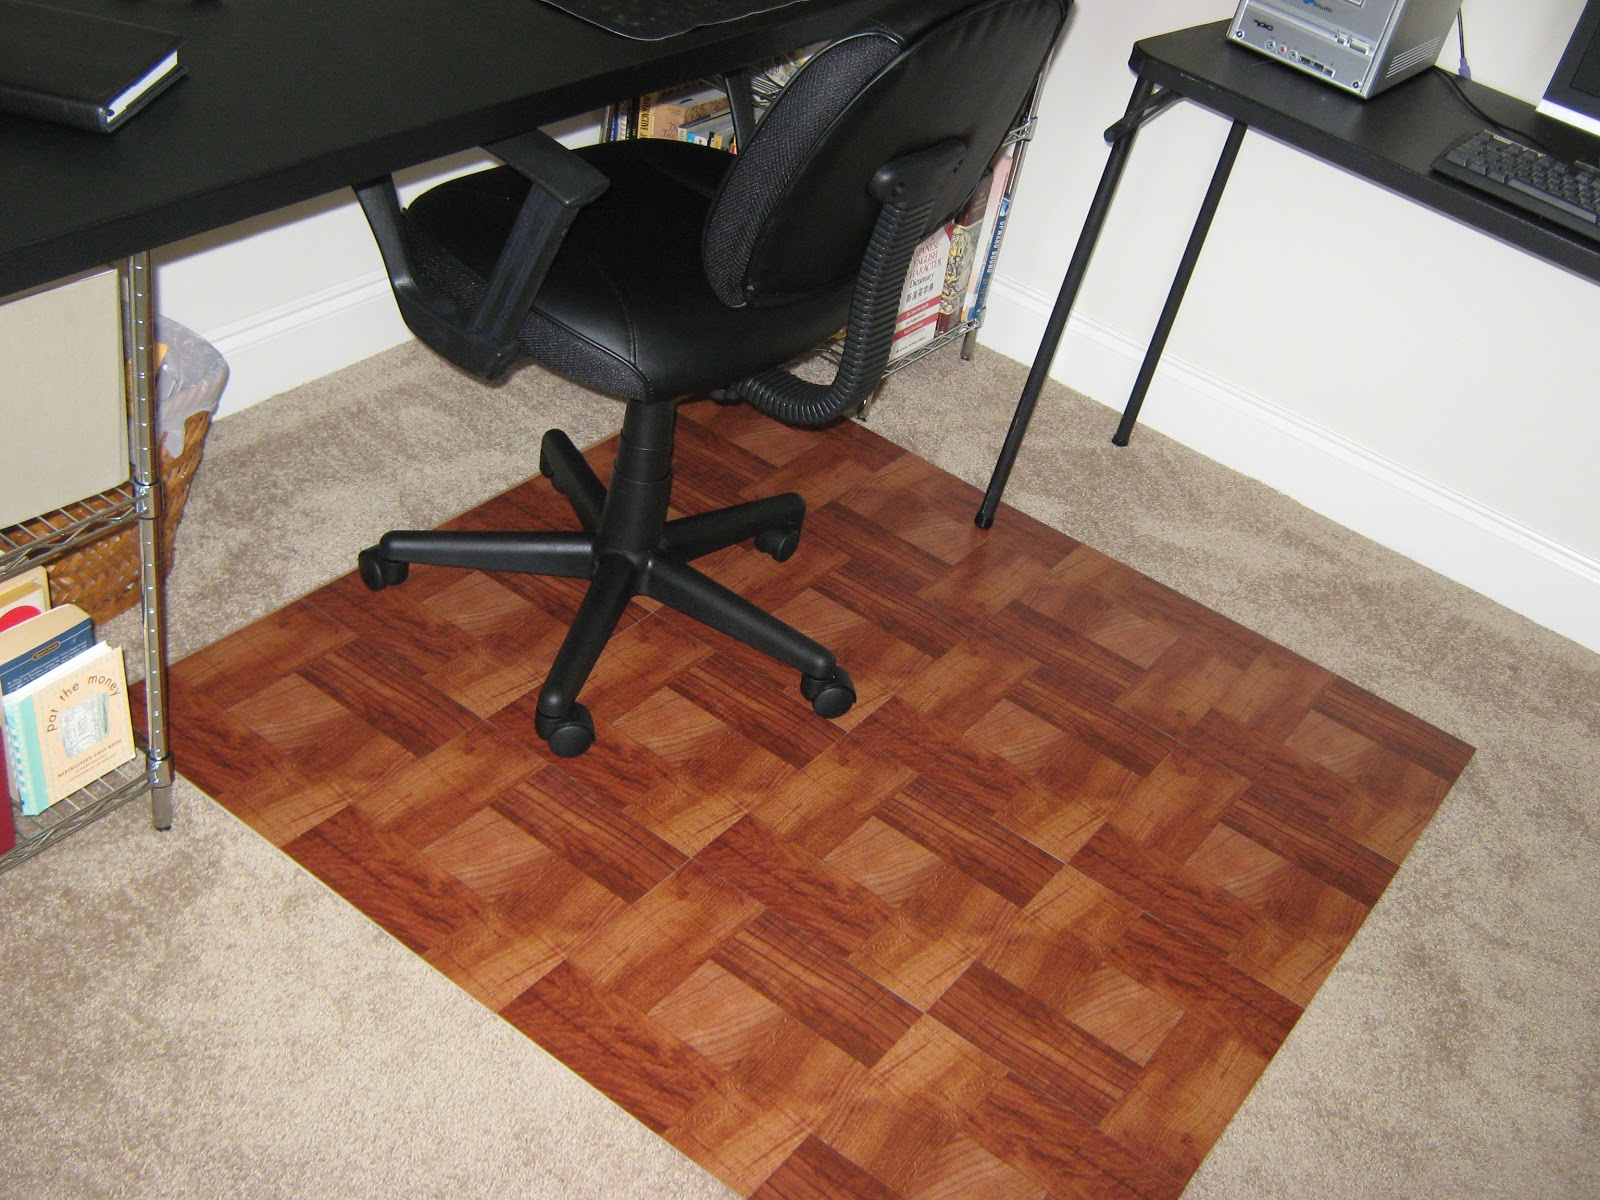 Image Result For Office Chair Mat For Hardwood Floors